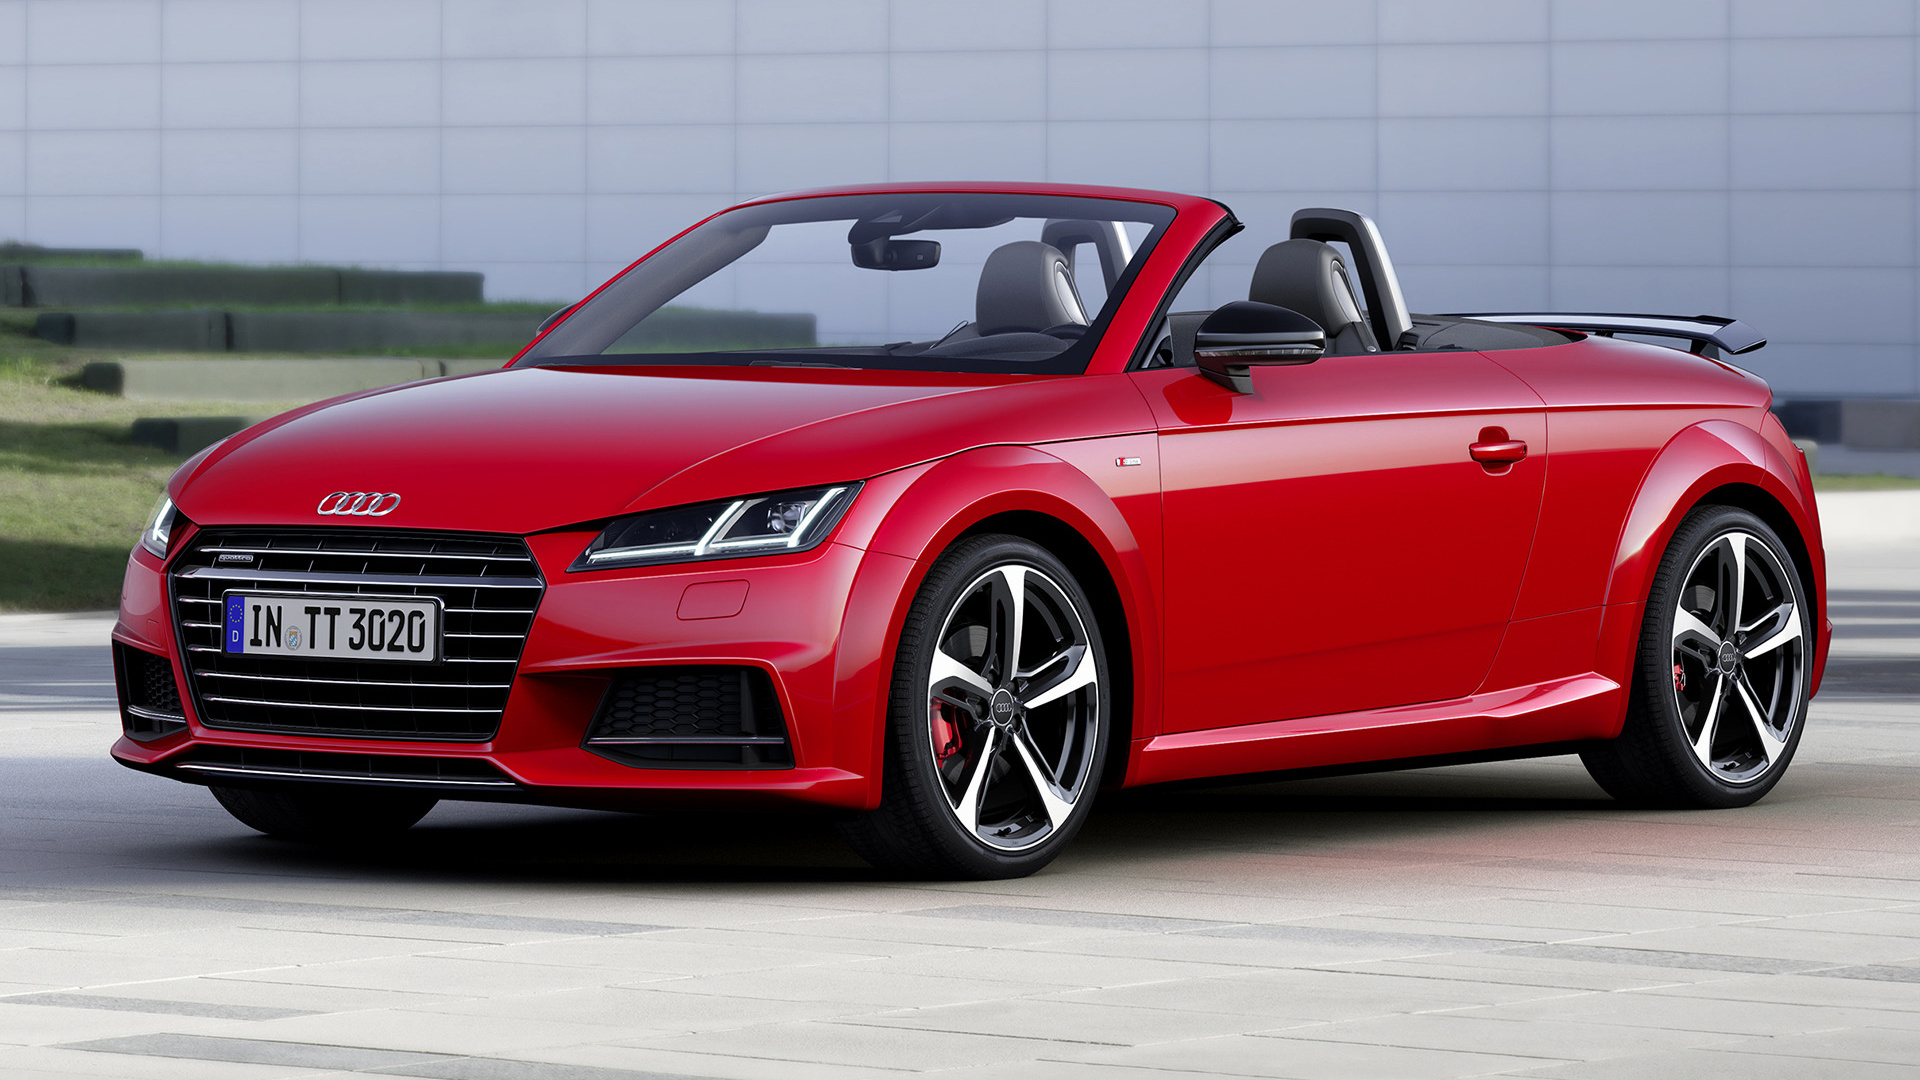 2016 audi tt roadster s line competition wallpapers and. Black Bedroom Furniture Sets. Home Design Ideas